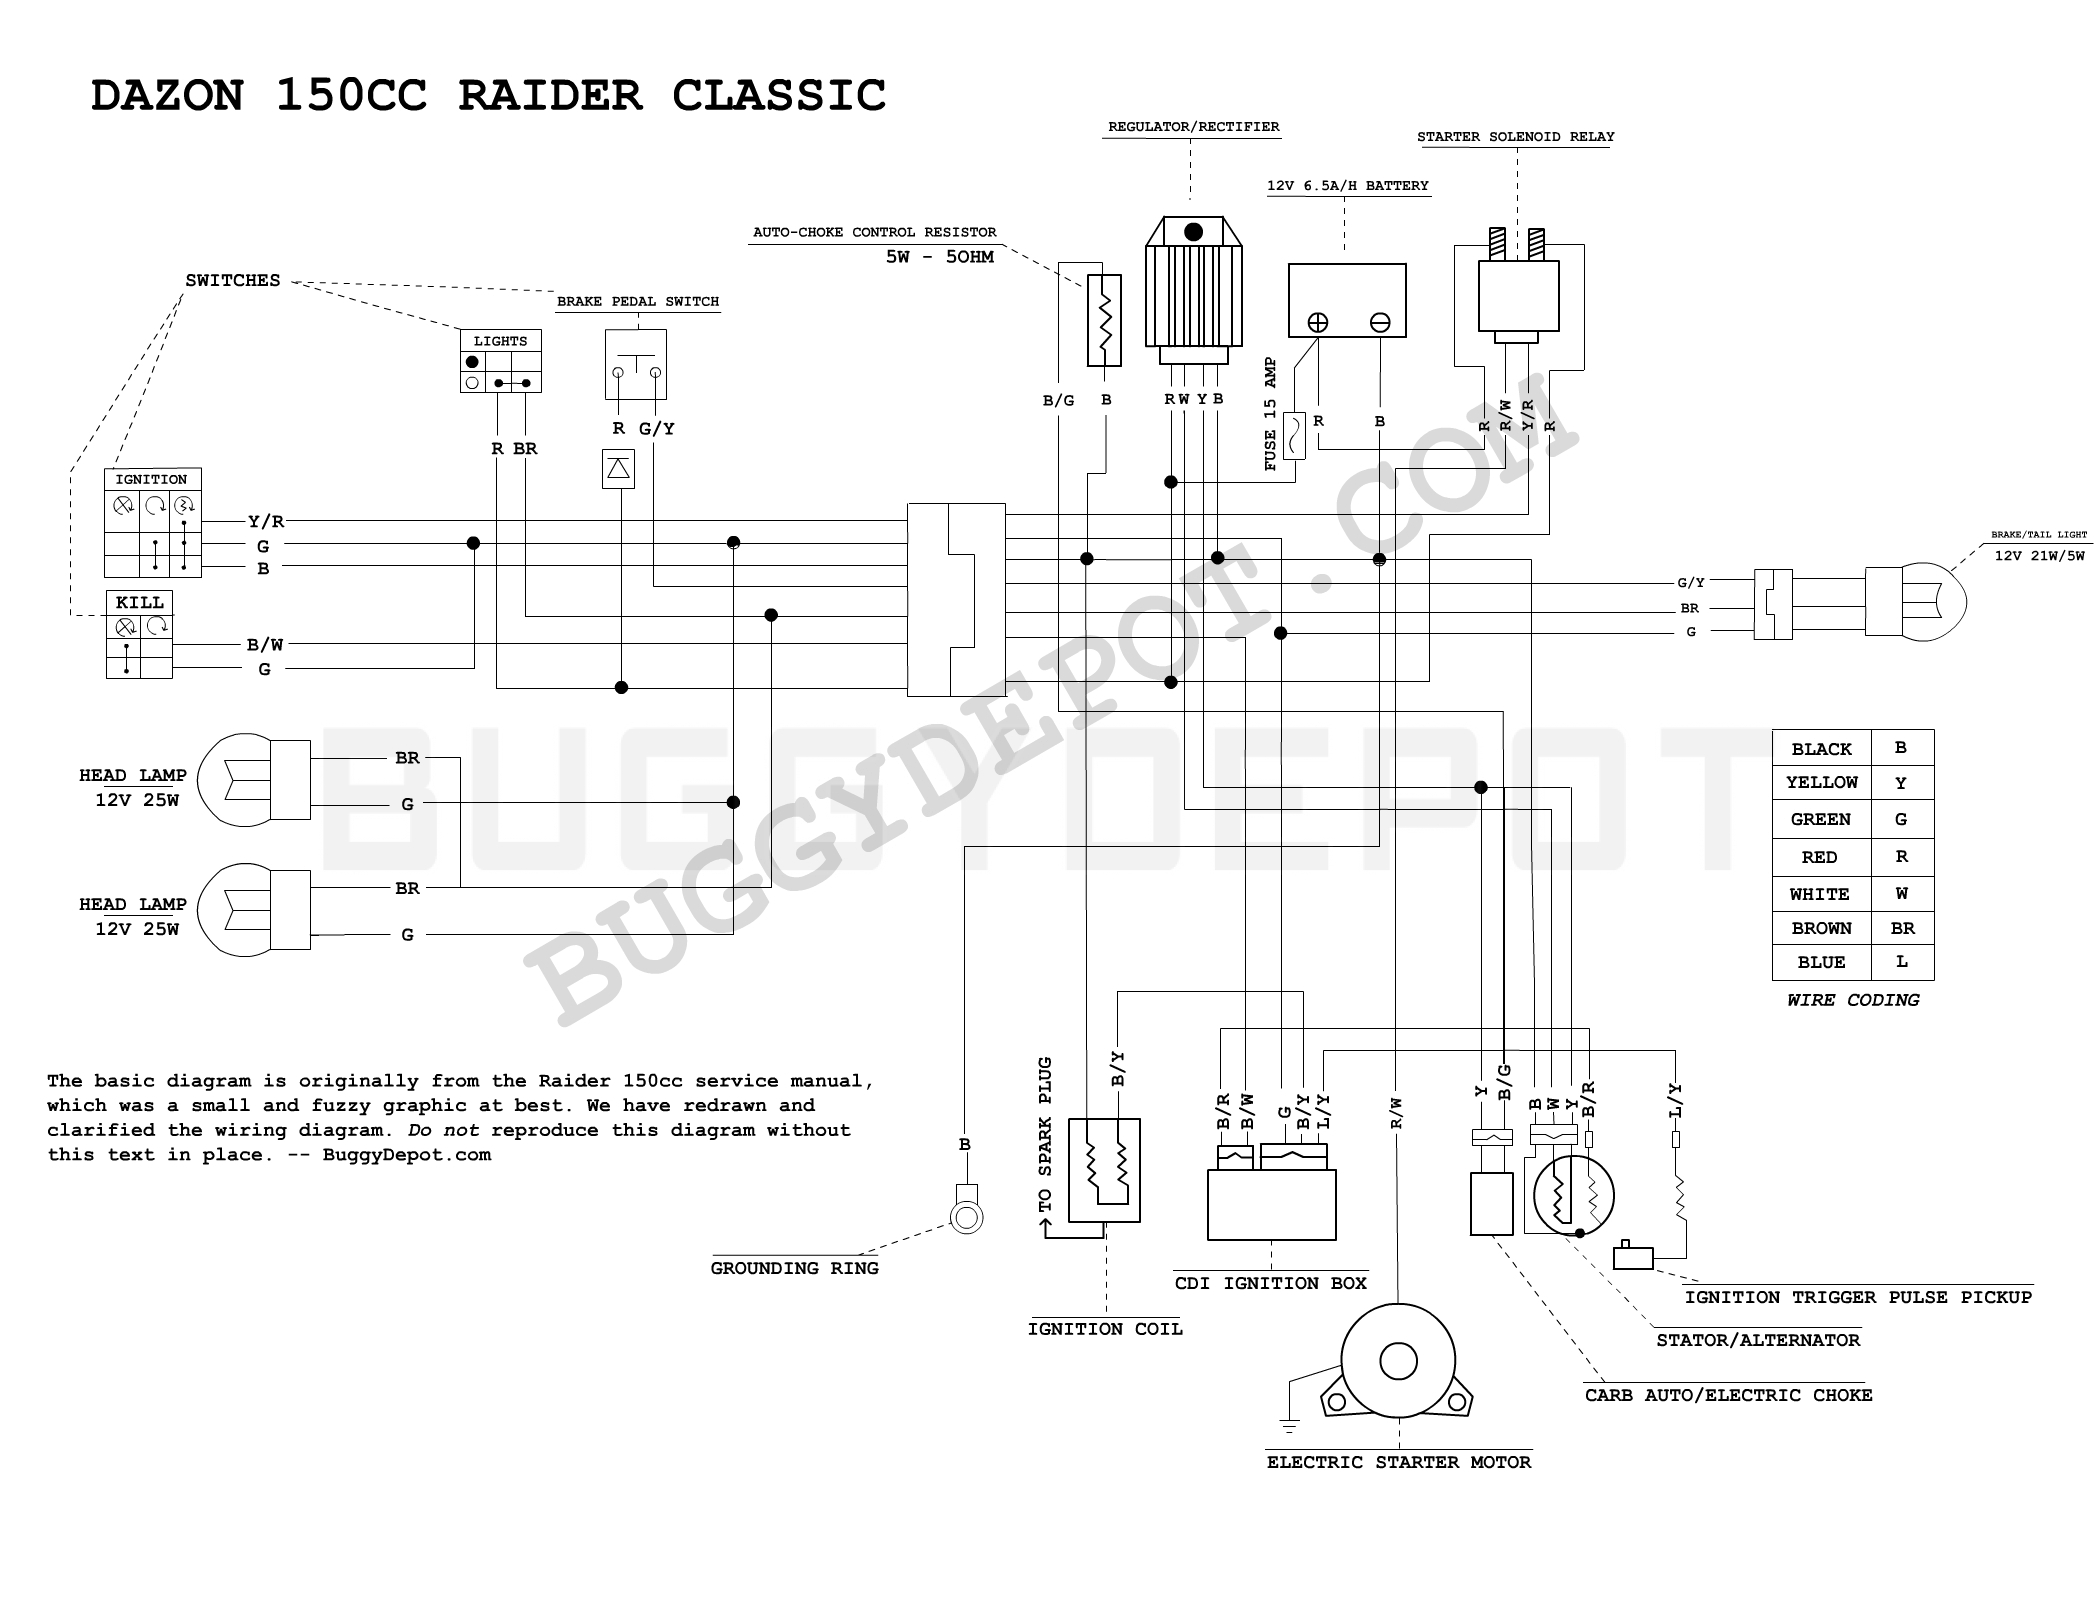 Pinout Diagram Of The Dc Cdi Buggy Depot Technical Center Honda 500 4 Wiring Dazon Raider Classic